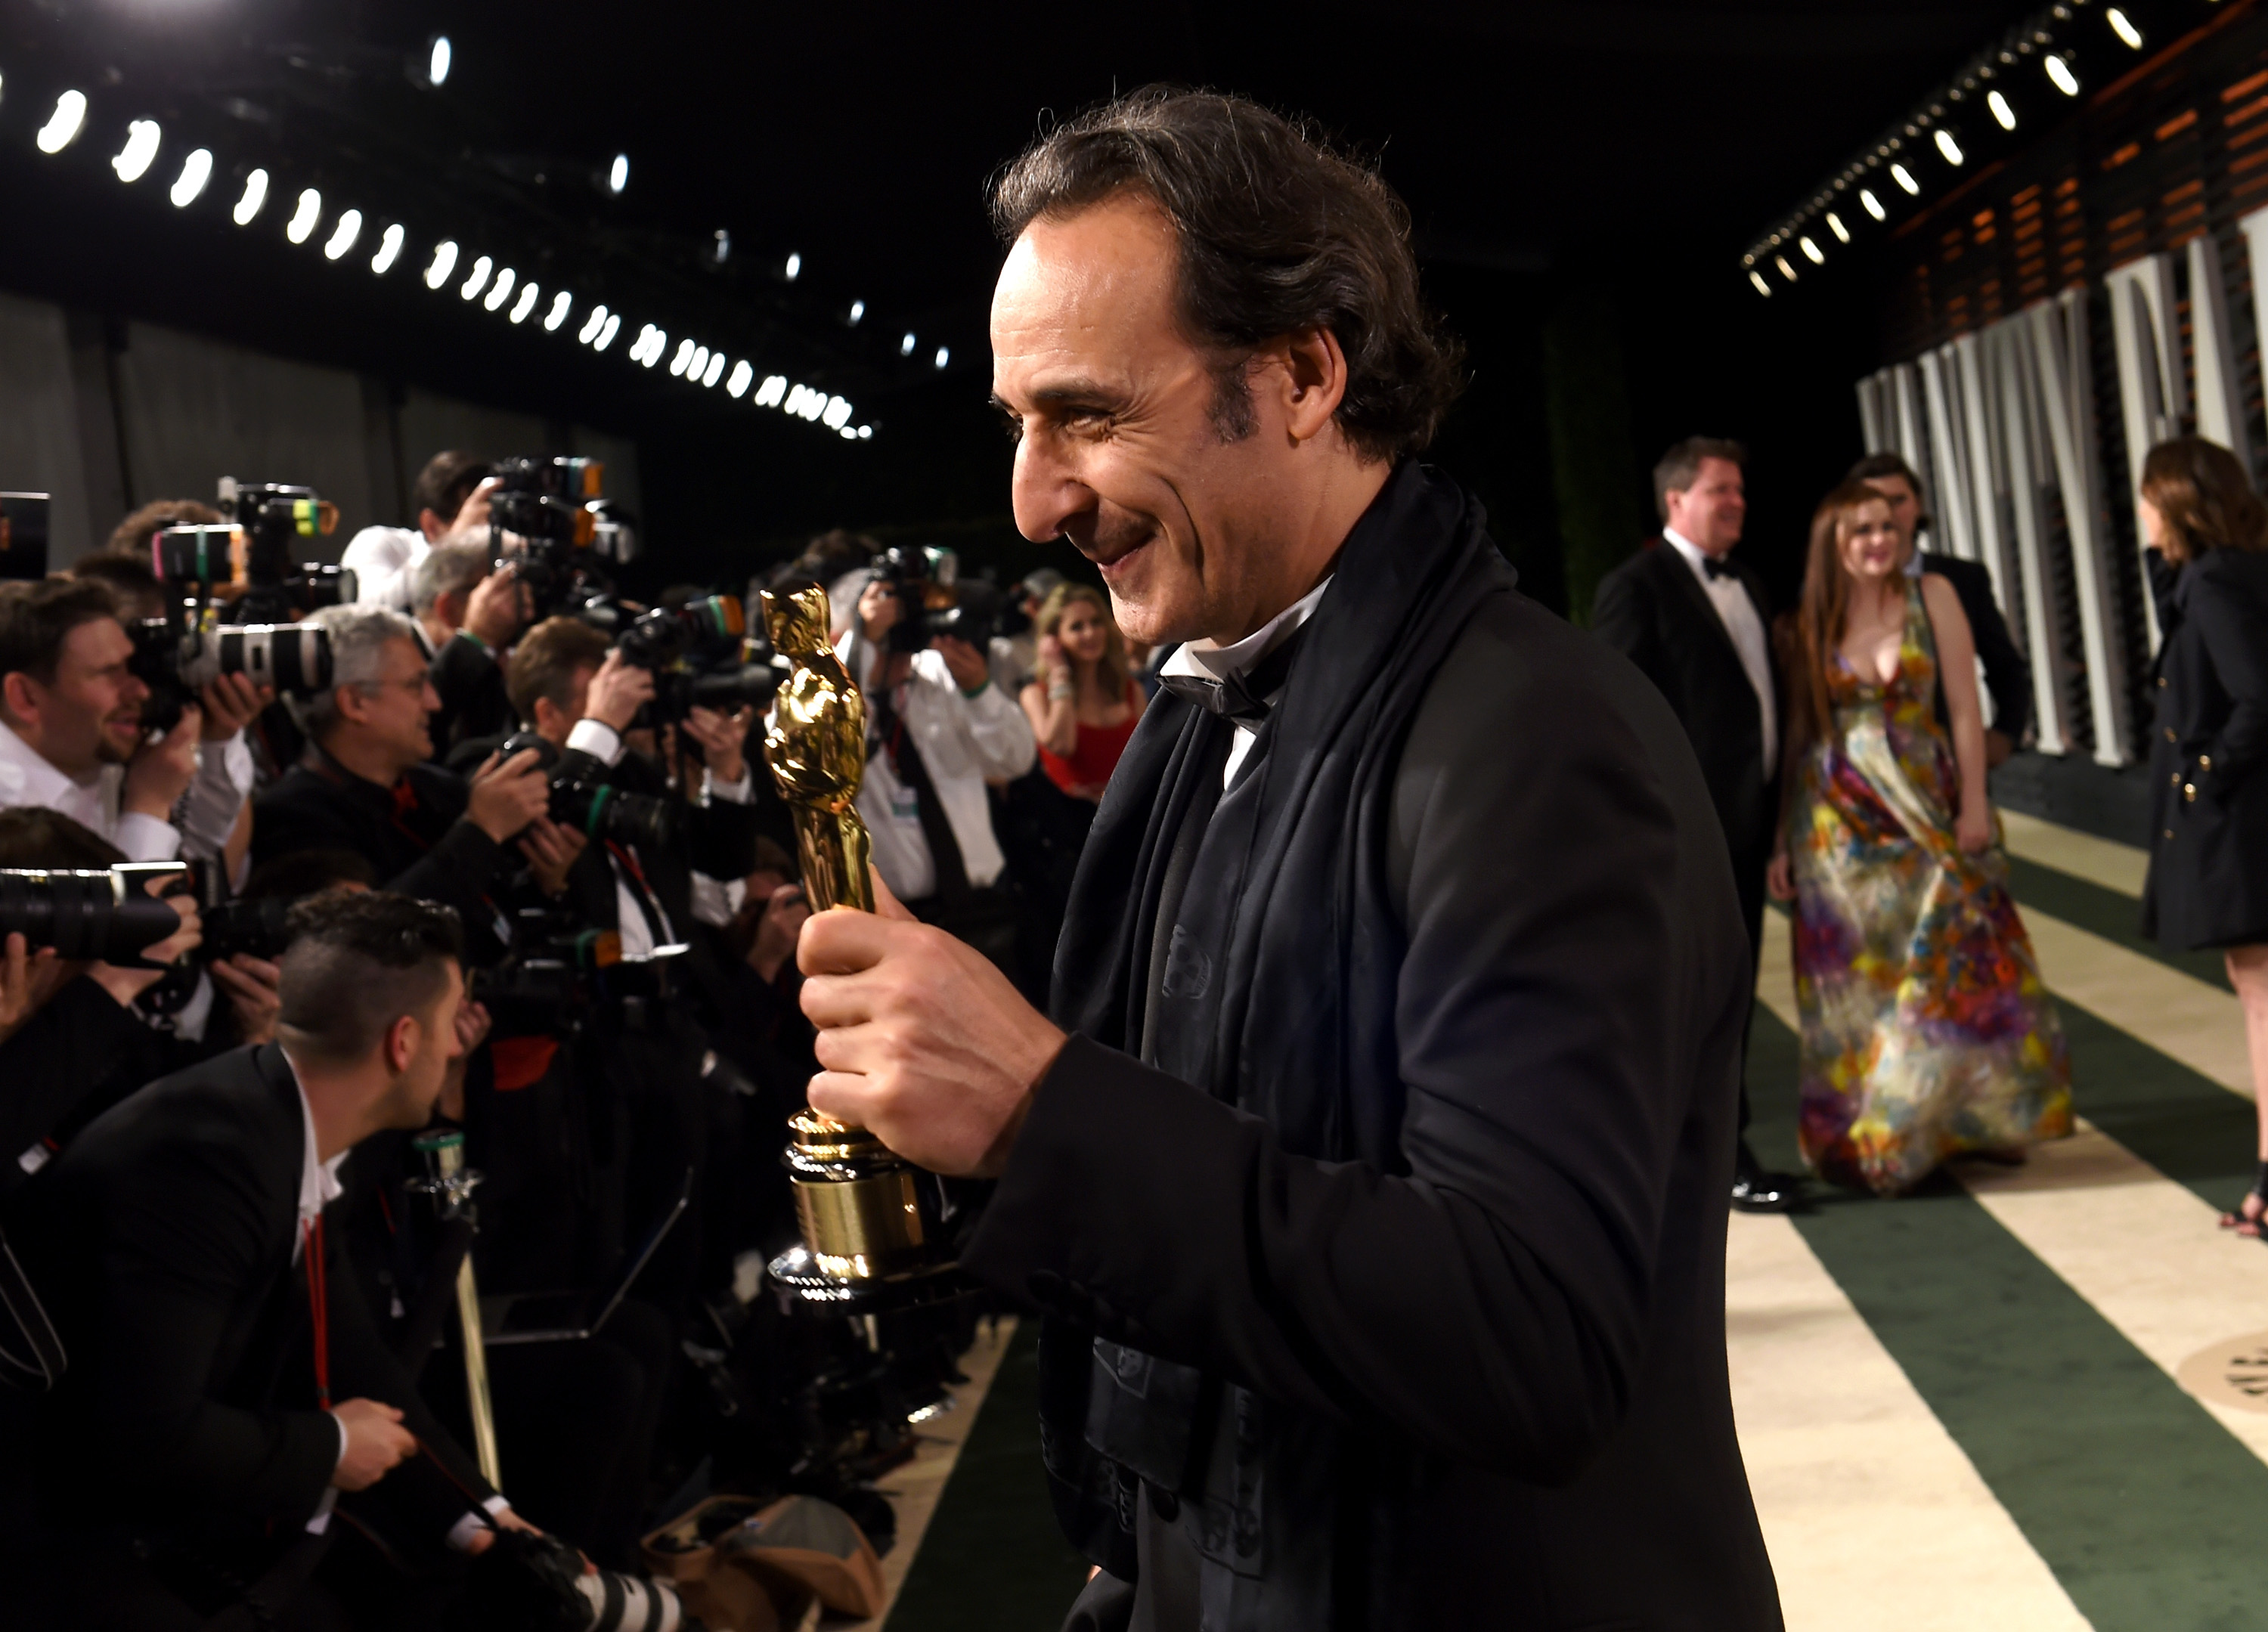 BEVERLY HILLS, CA - FEBRUARY 22:  Composer Alexandre Desplat attends the 2015 Vanity Fair Oscar Party hosted by Graydon Carte